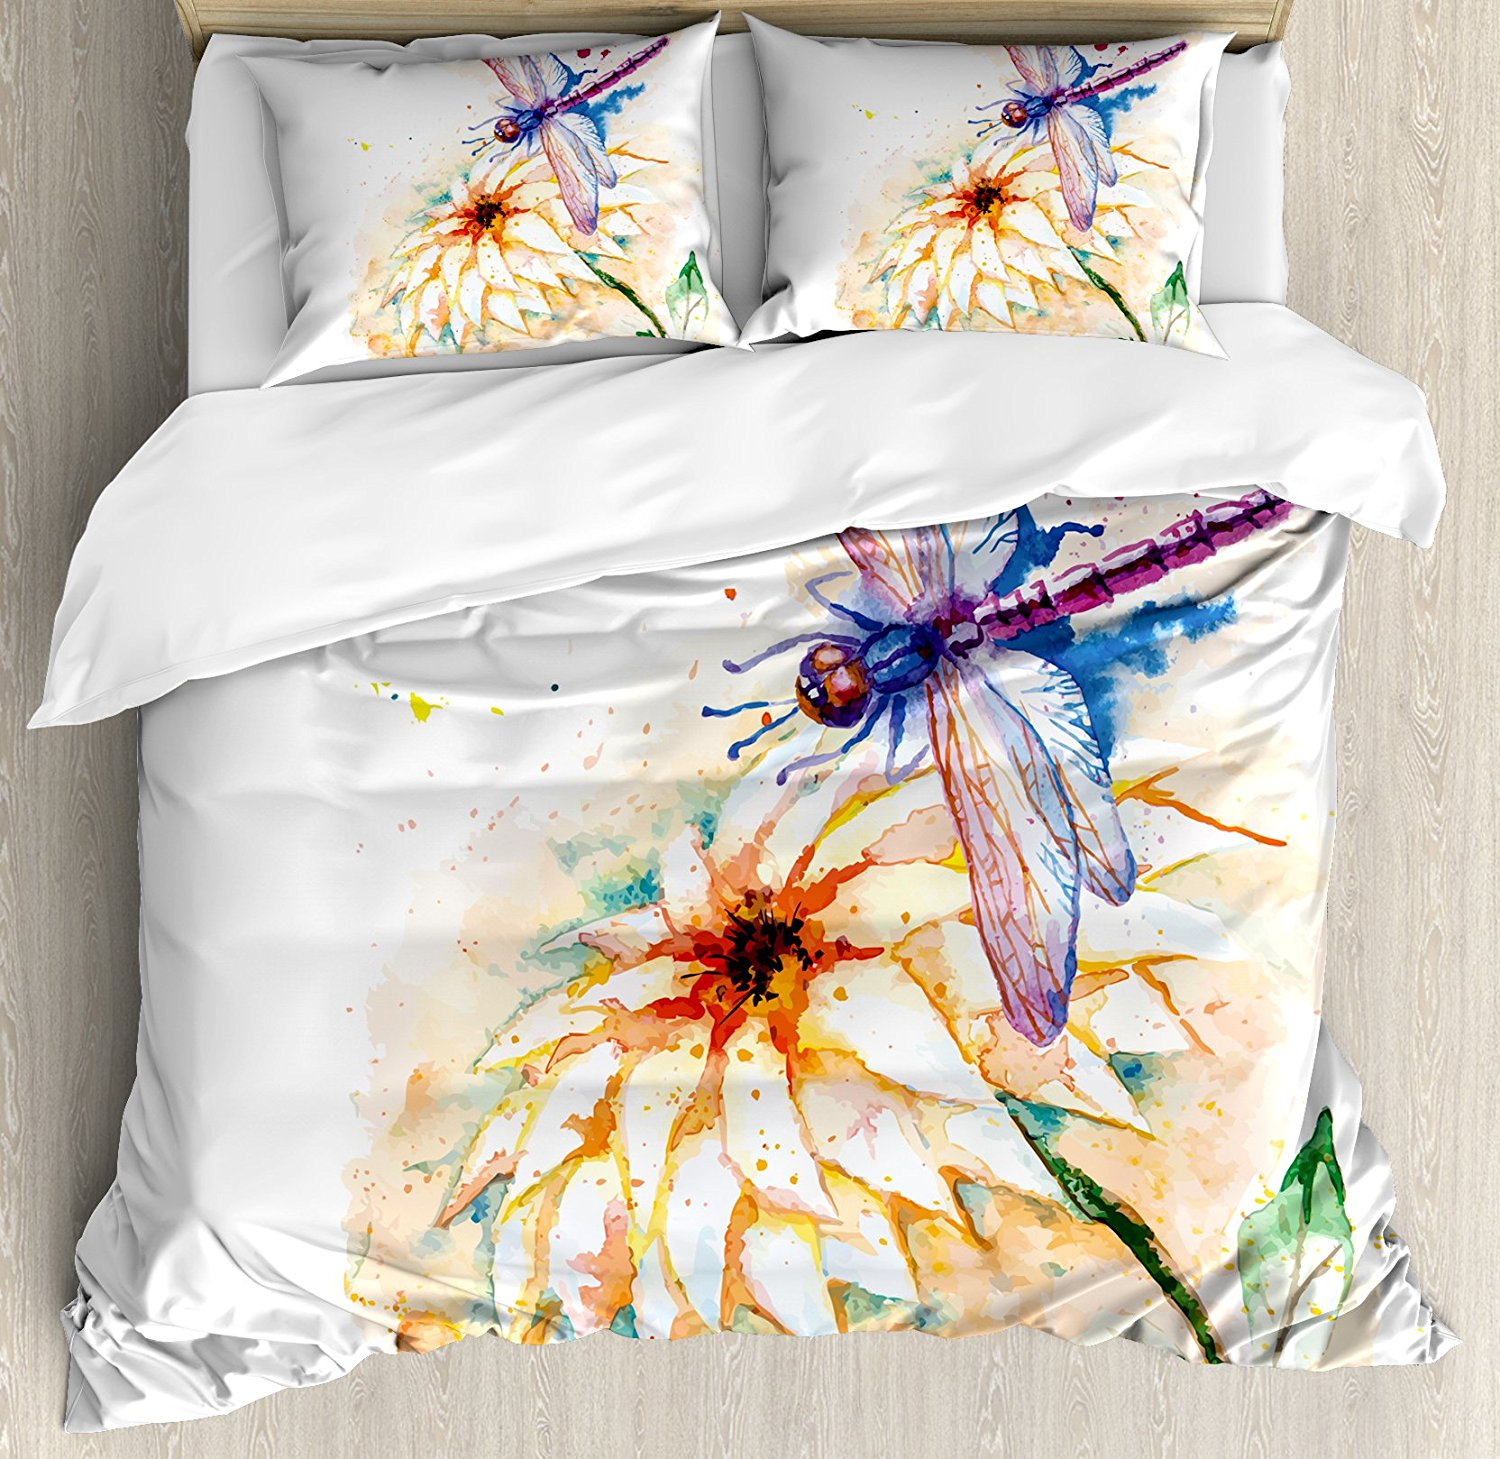 Dragonfly Duvet Cover Set Watercolor Stylized Lily Flower And Flying Bug Over It Nature Spring Theme Print 4pcs Bedding Set